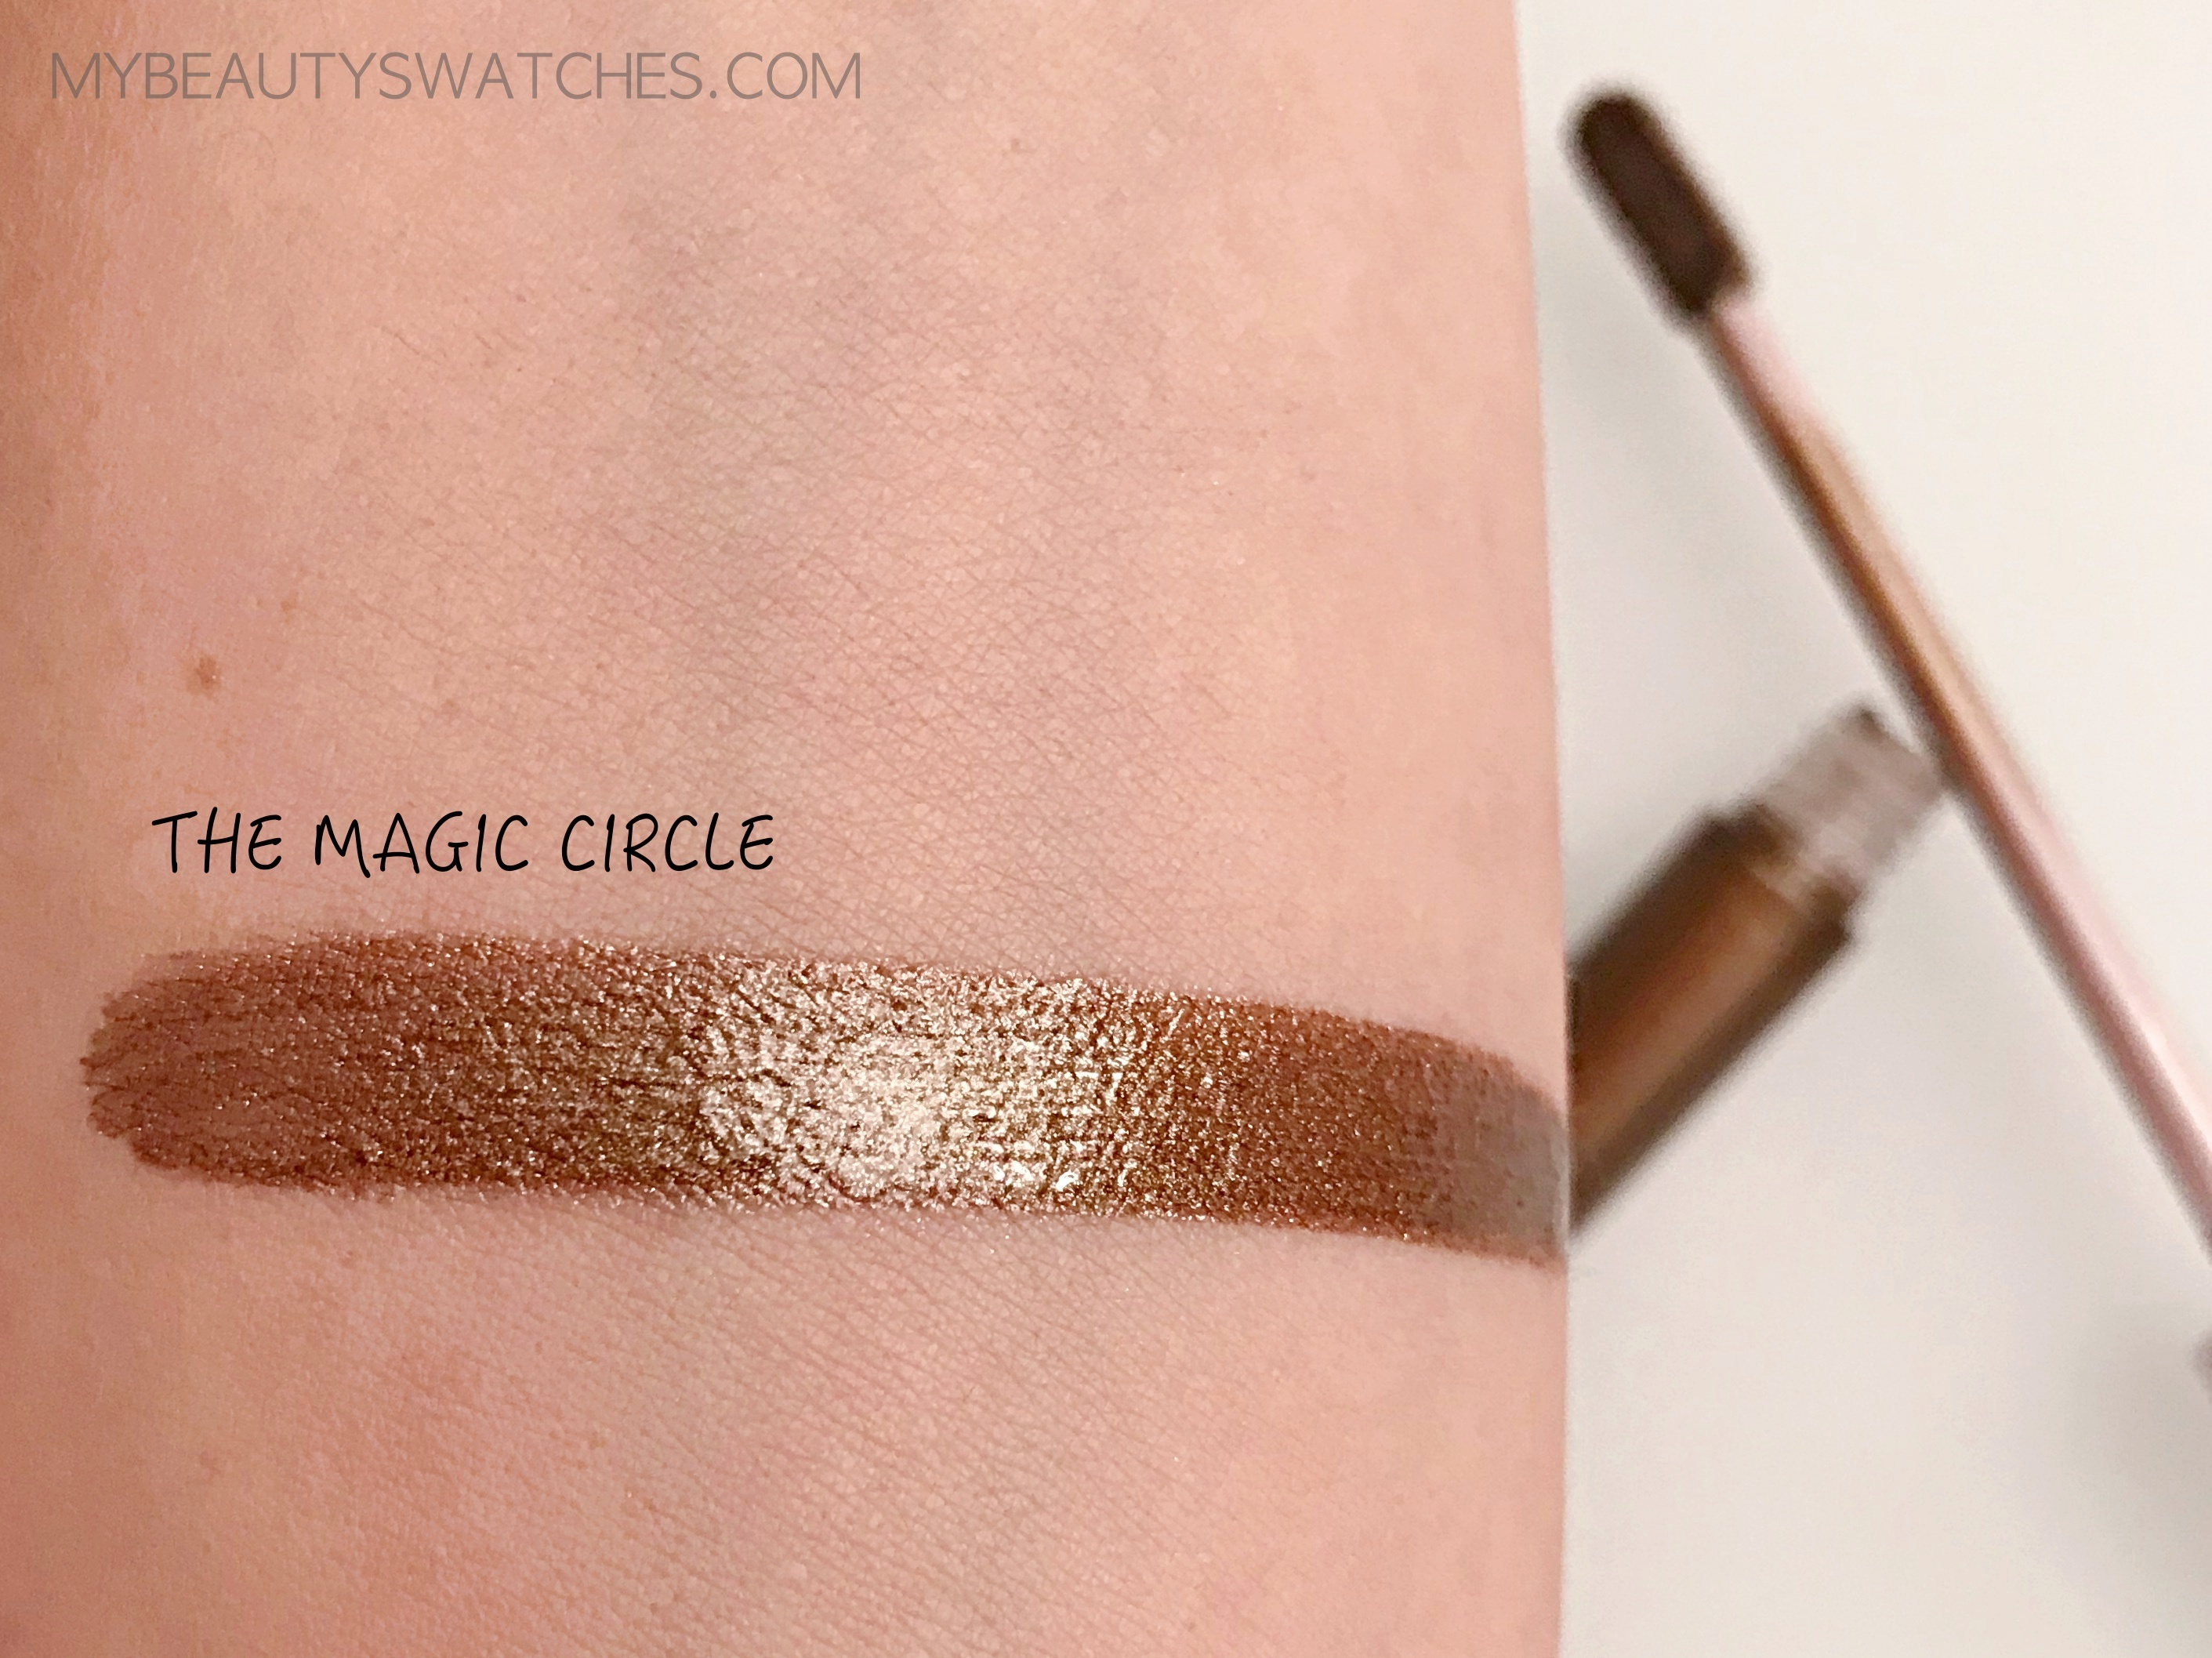 Neve Neogothic_Vernissage The Magic Circle swatch.jpg